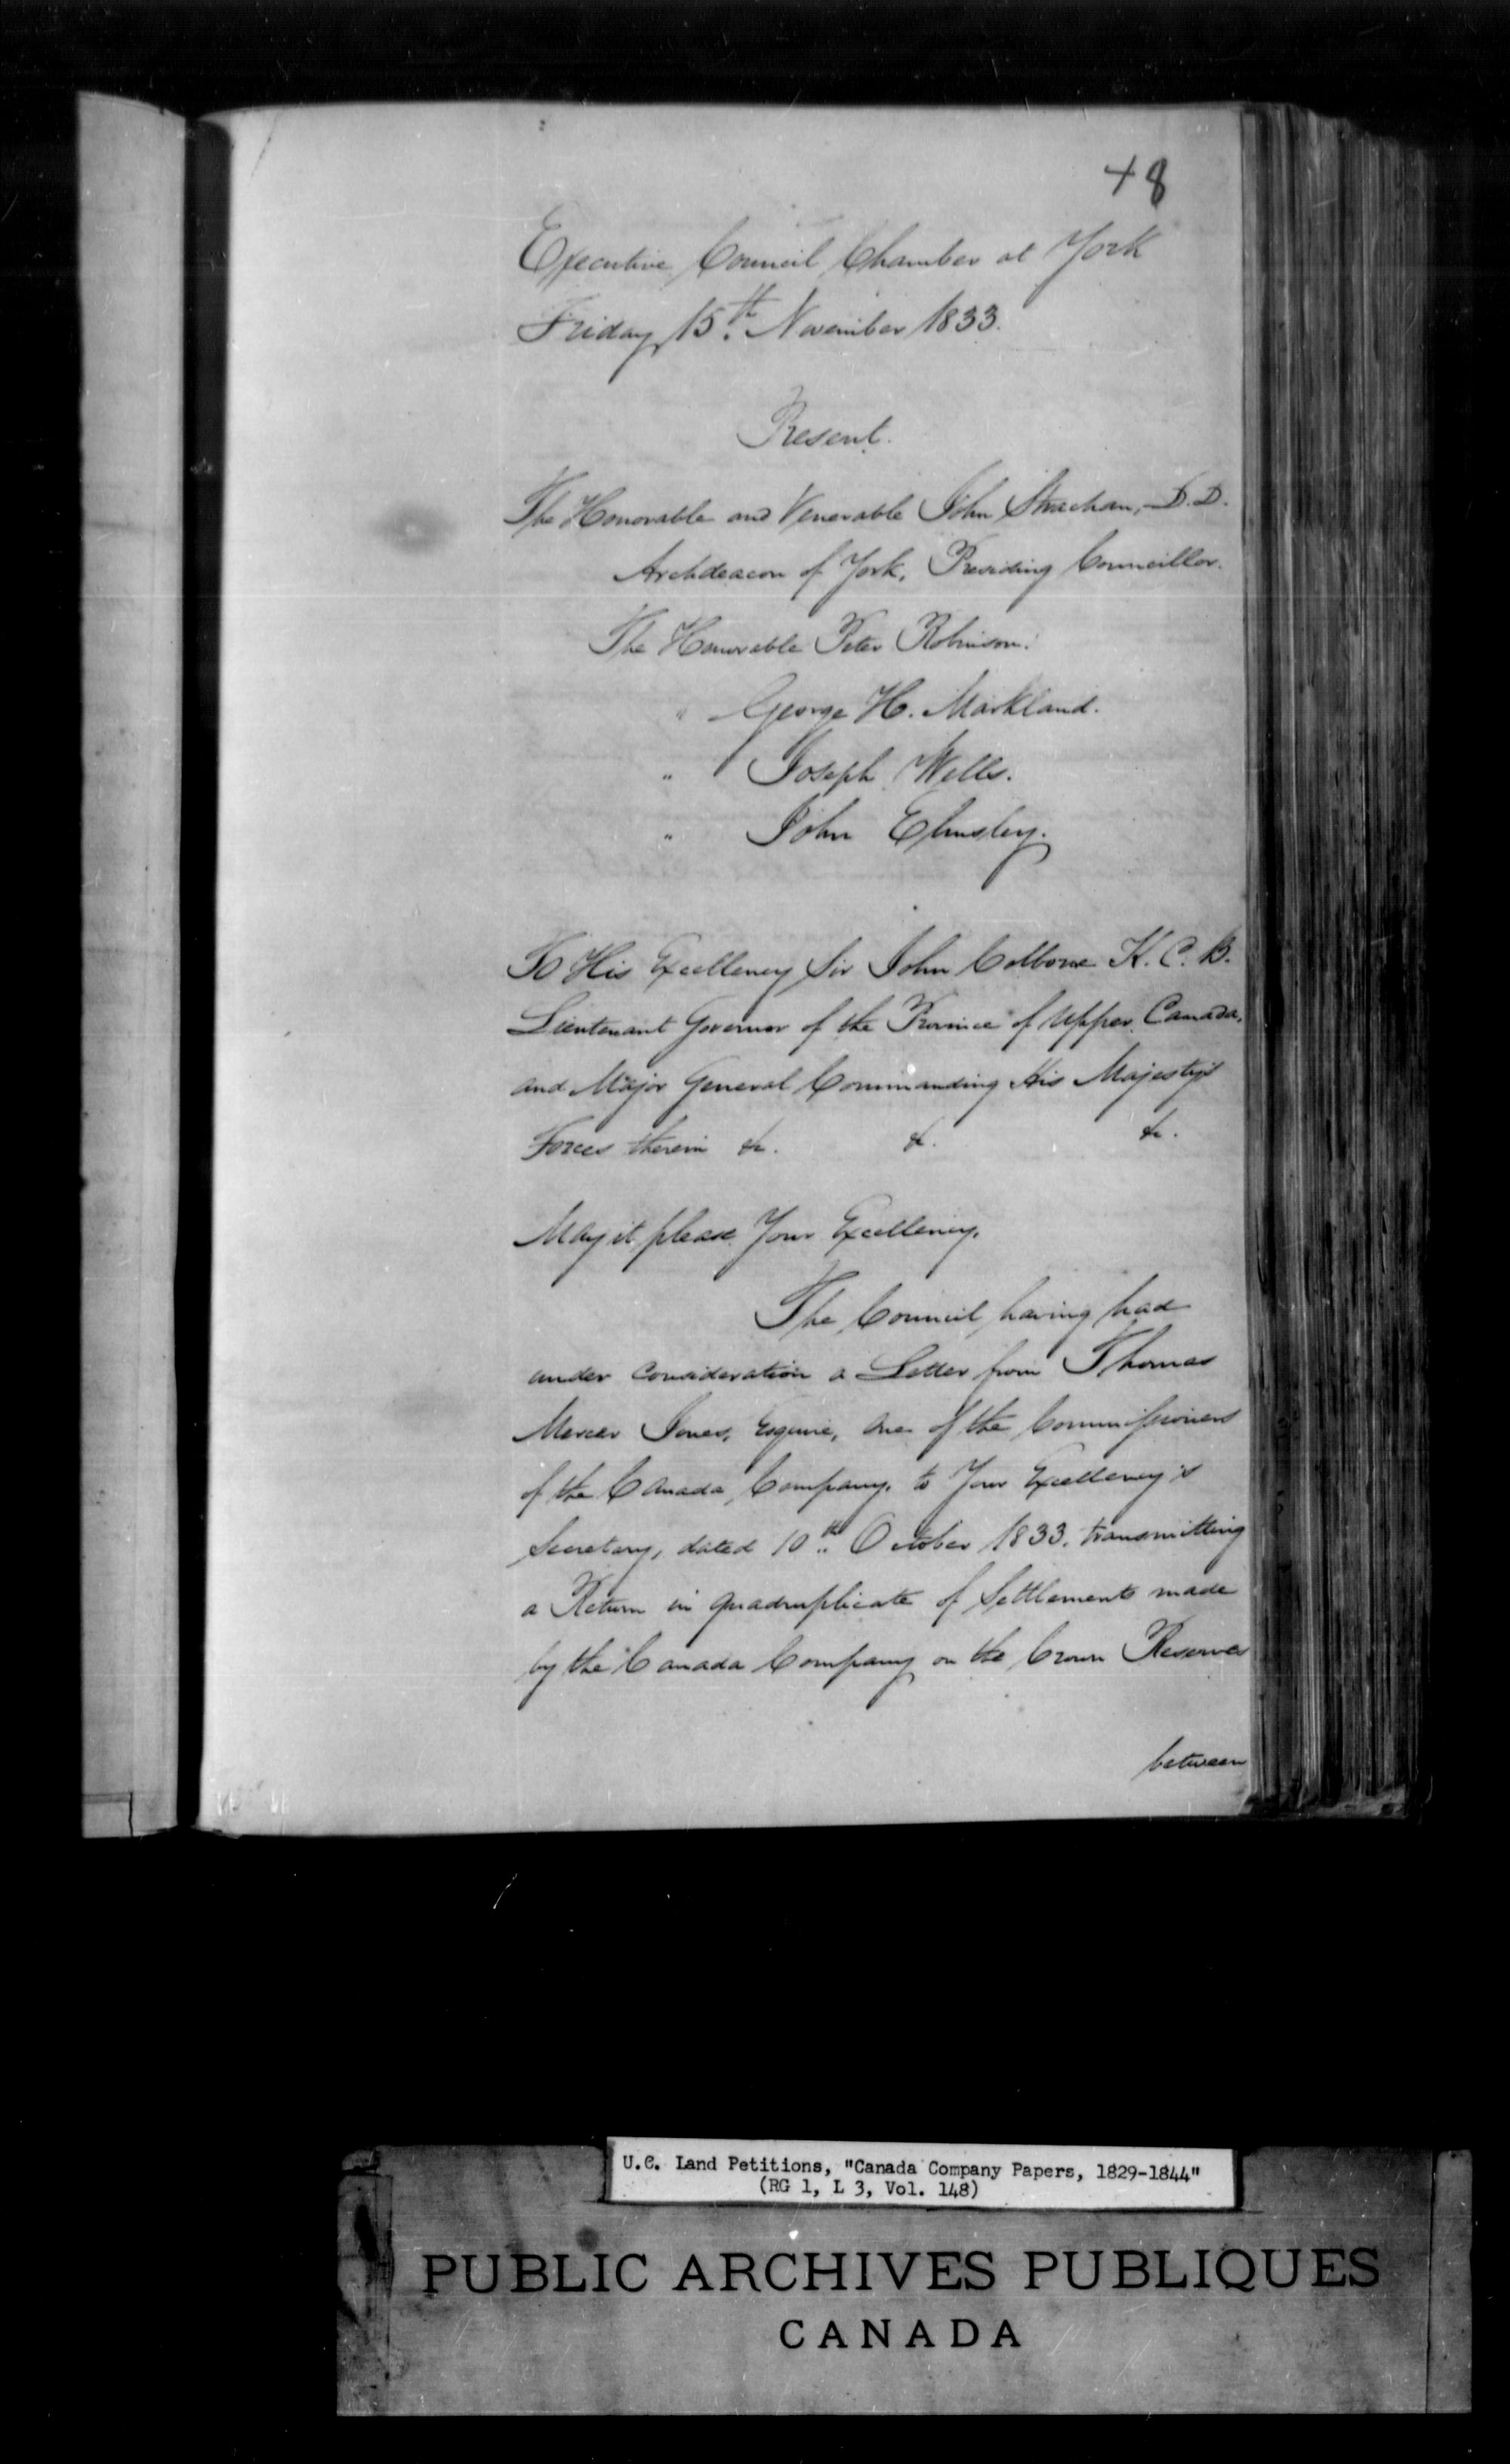 Title: Upper Canada Land Petitions (1763-1865) - Mikan Number: 205131 - Microform: c-1742